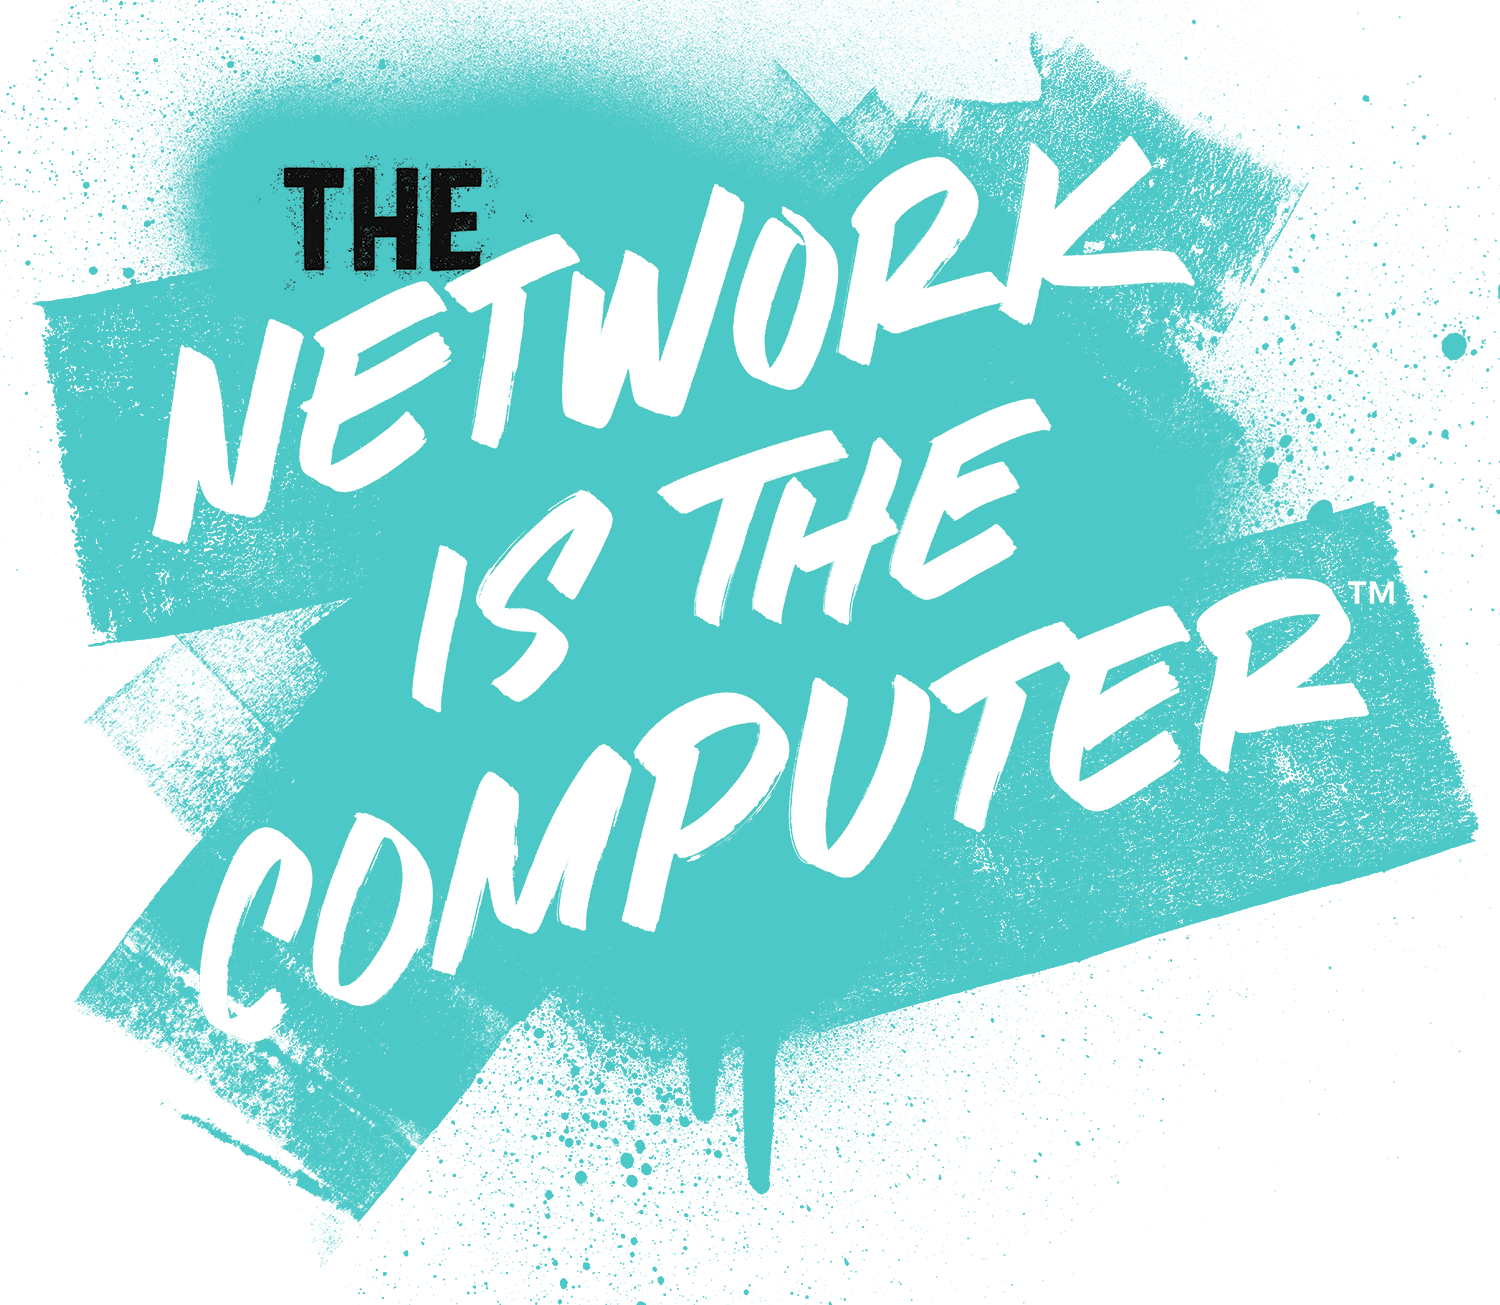 The Network is the Computer